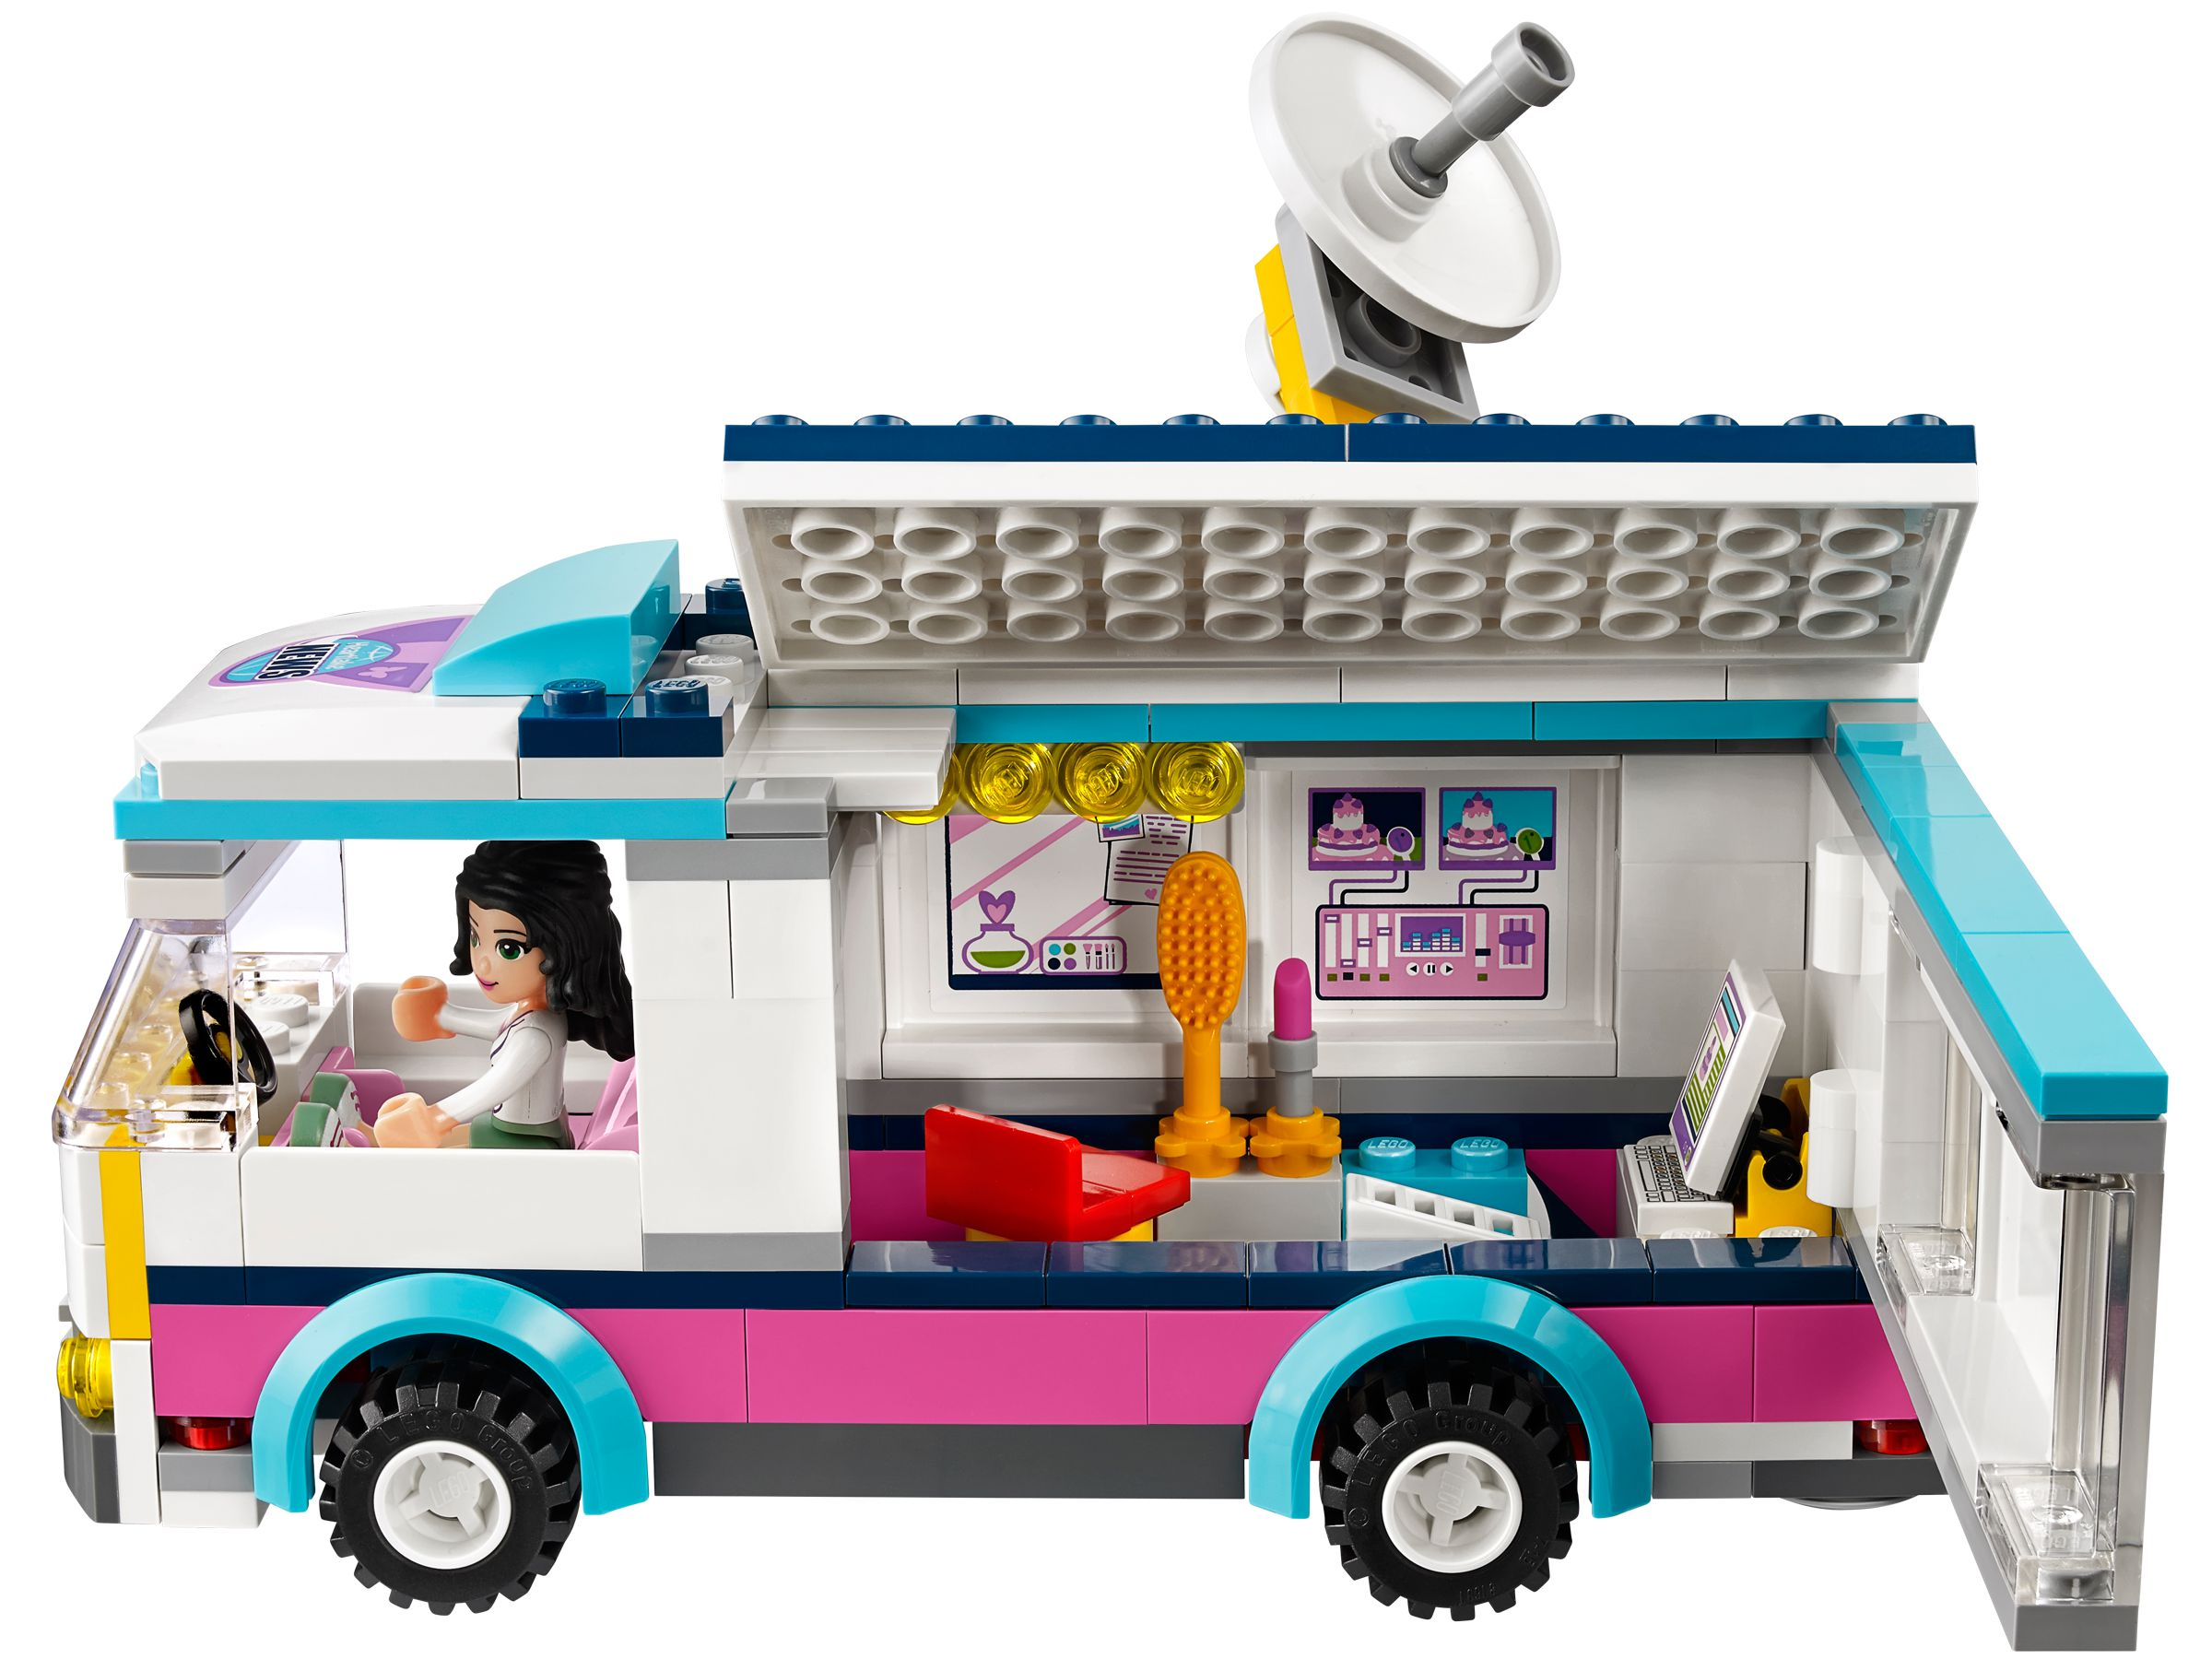 LEGO Friends 41056 Mobile Fernsehstation LEGO_41056_alt2.jpg